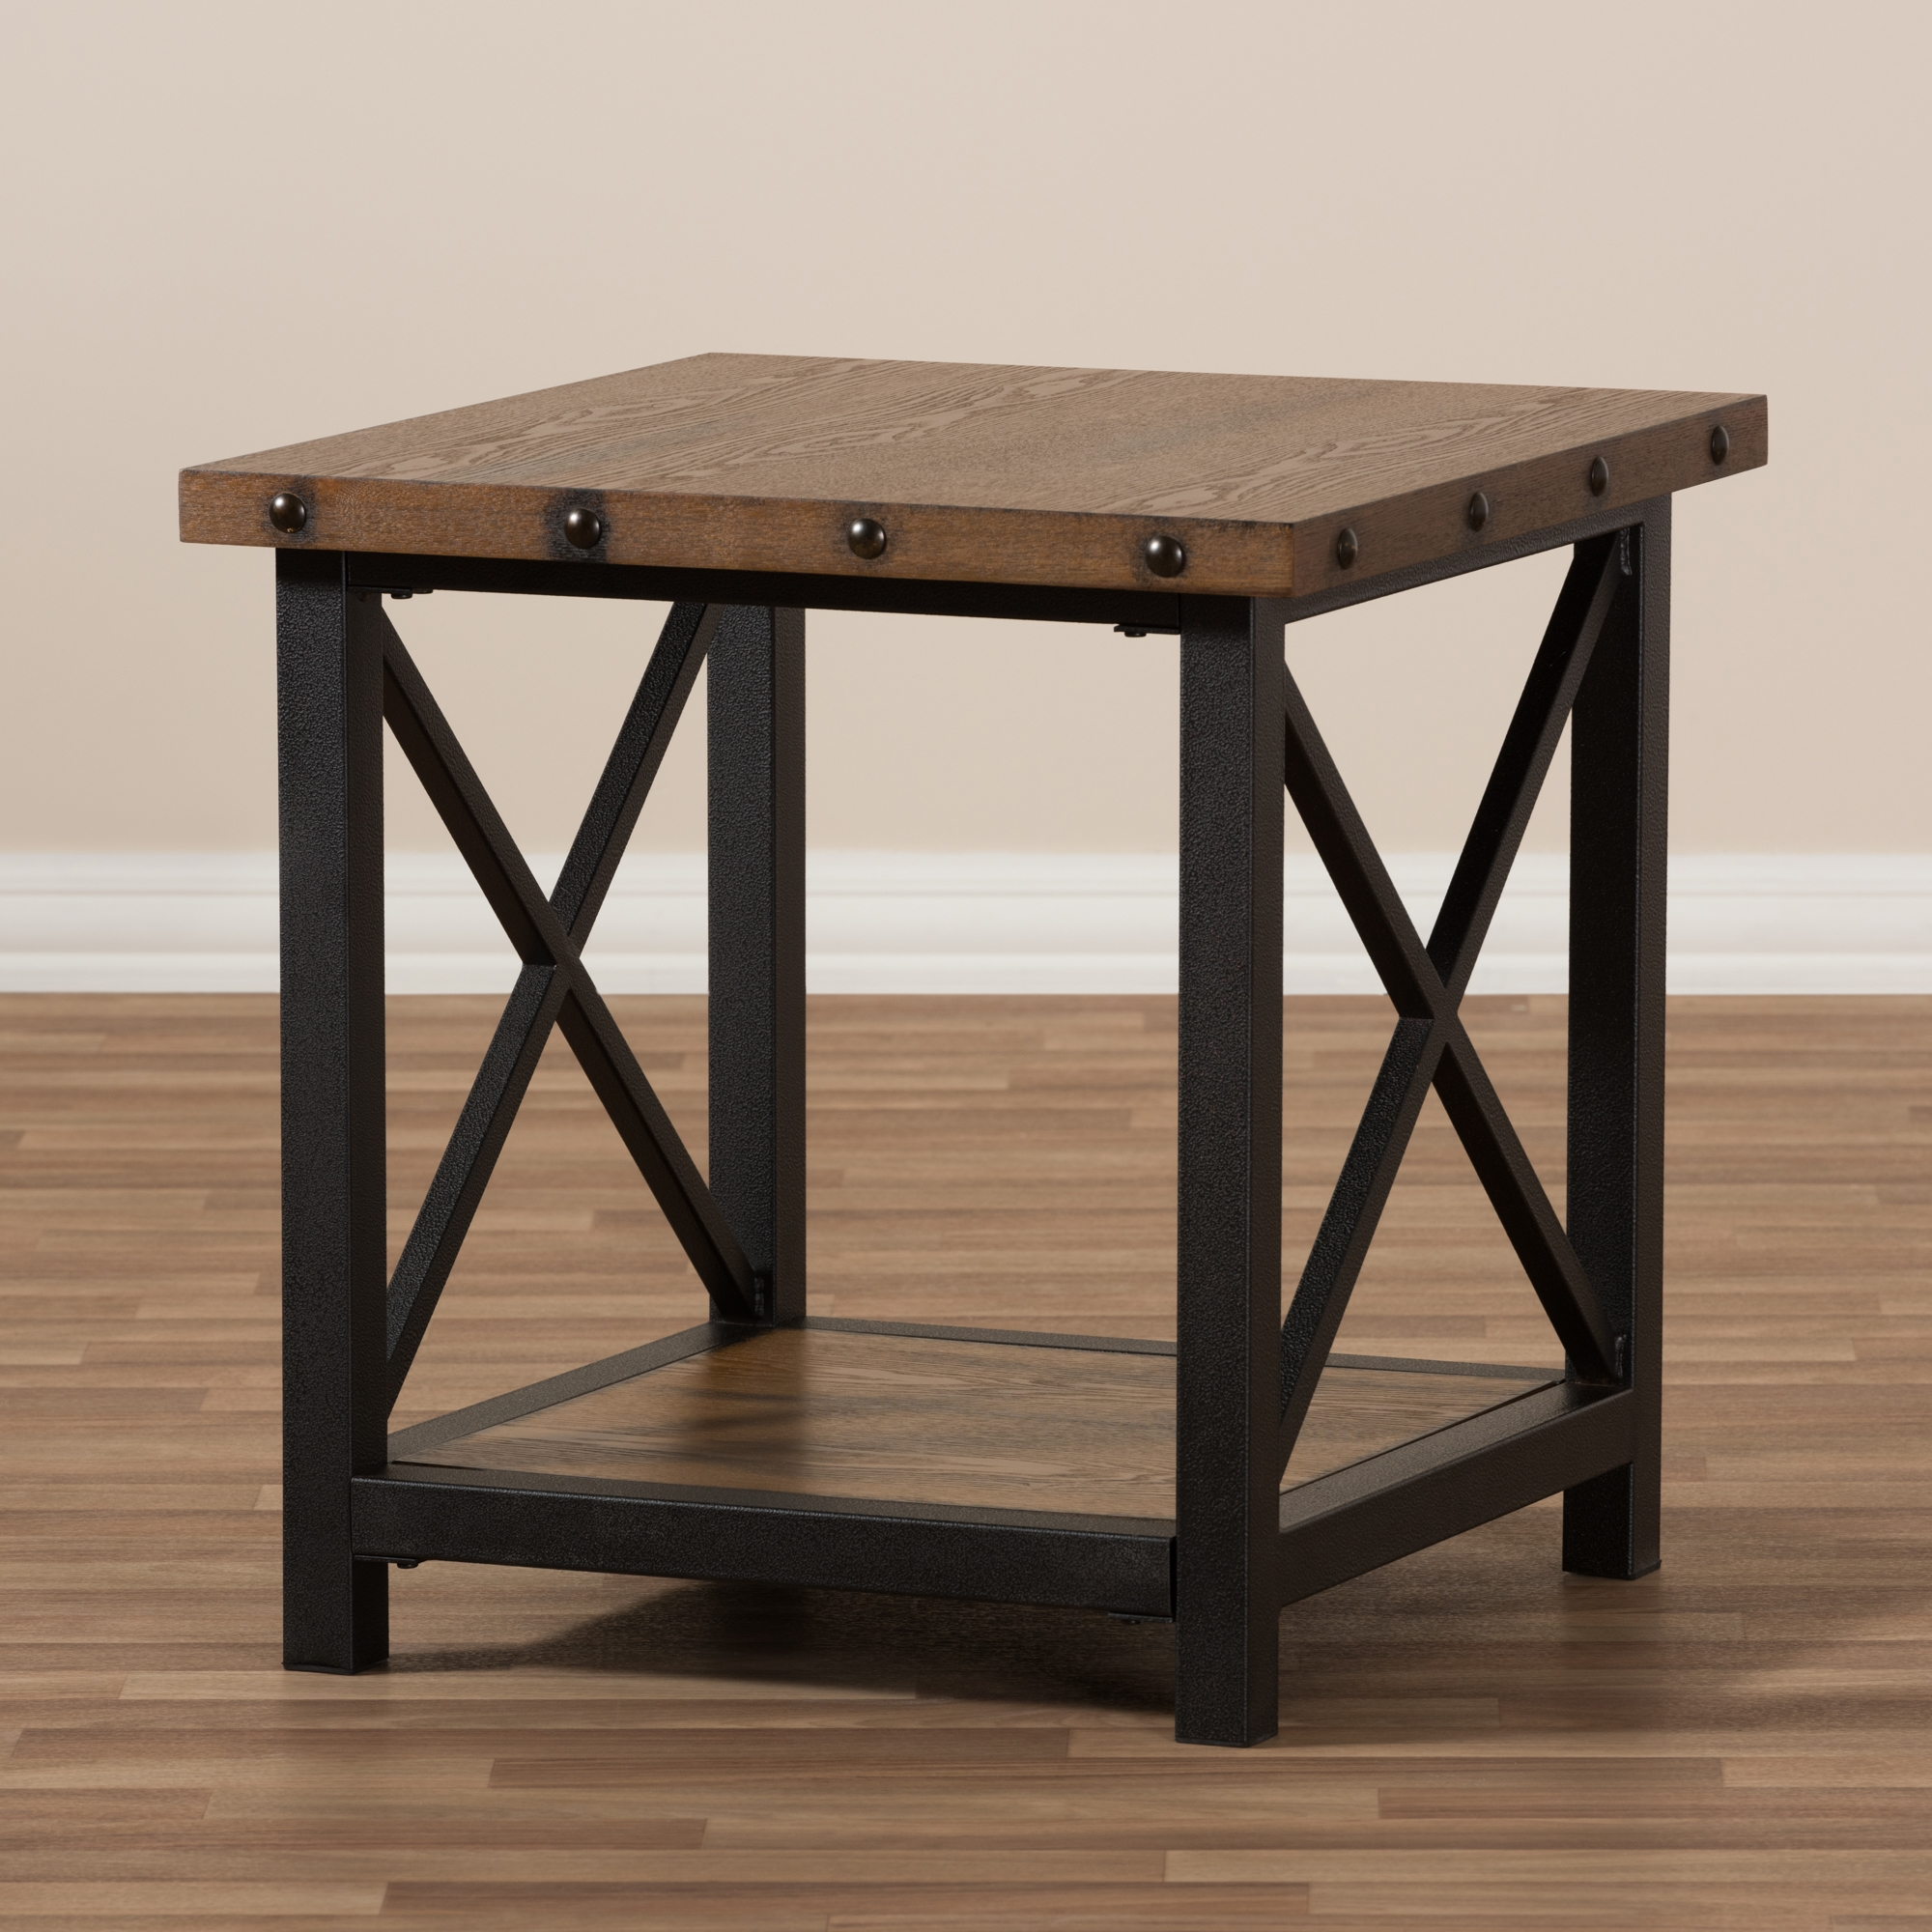 ... Baxton Studio Herzen Rustic Industrial Style Antique Black Textured  Finished Metal Distressed Wood Occasional End Table